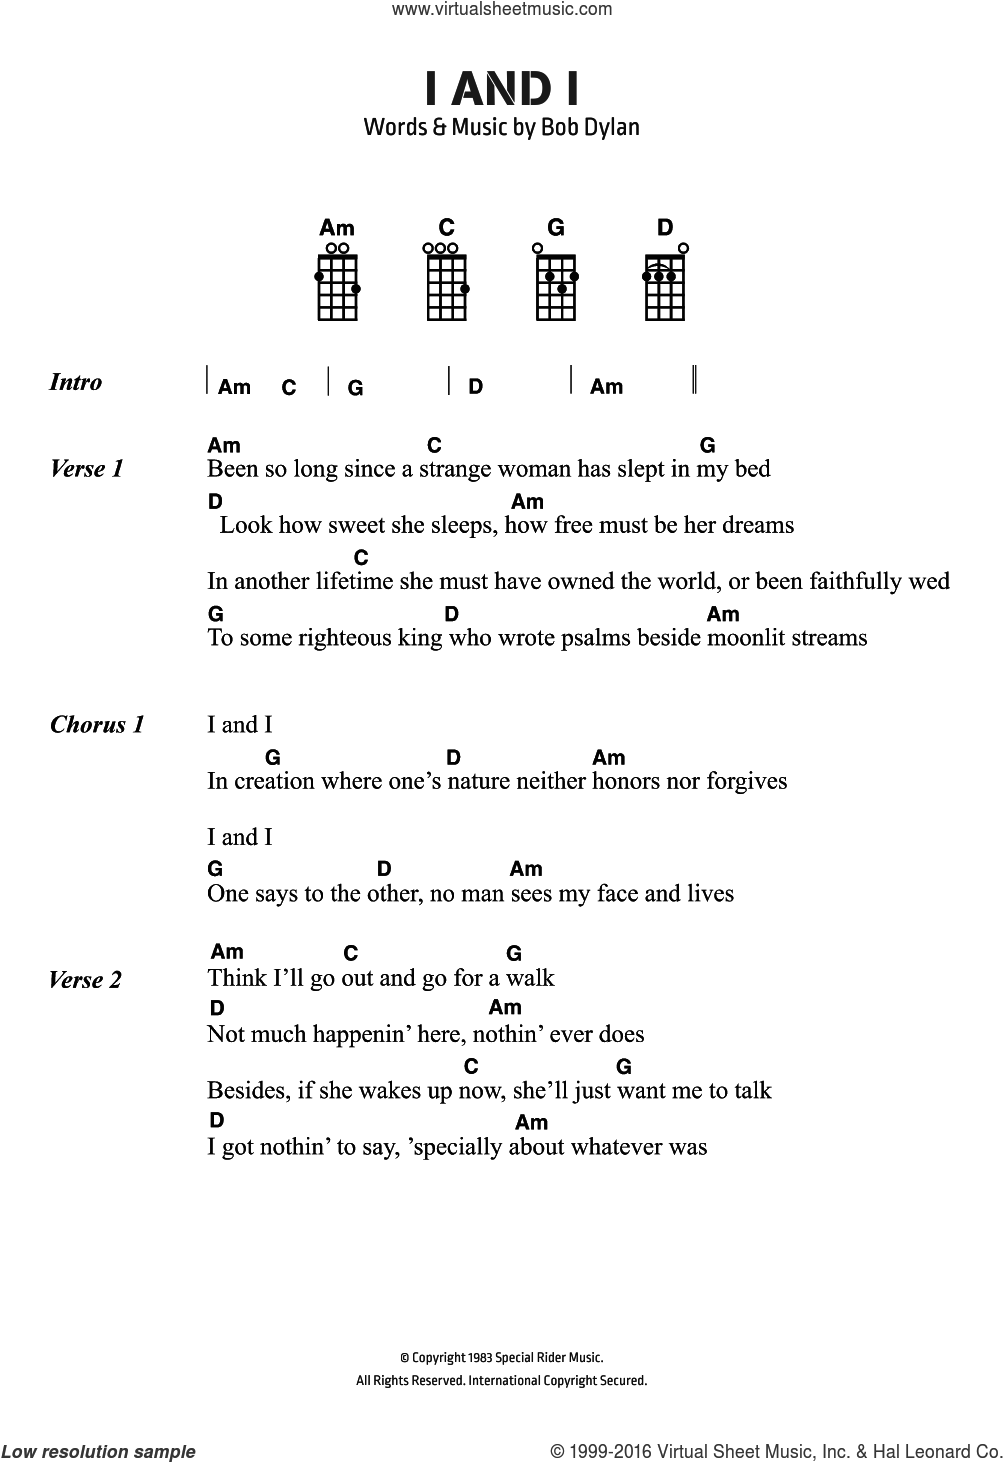 I And I sheet music for voice, piano or guitar by Bob Dylan. Score Image Preview.